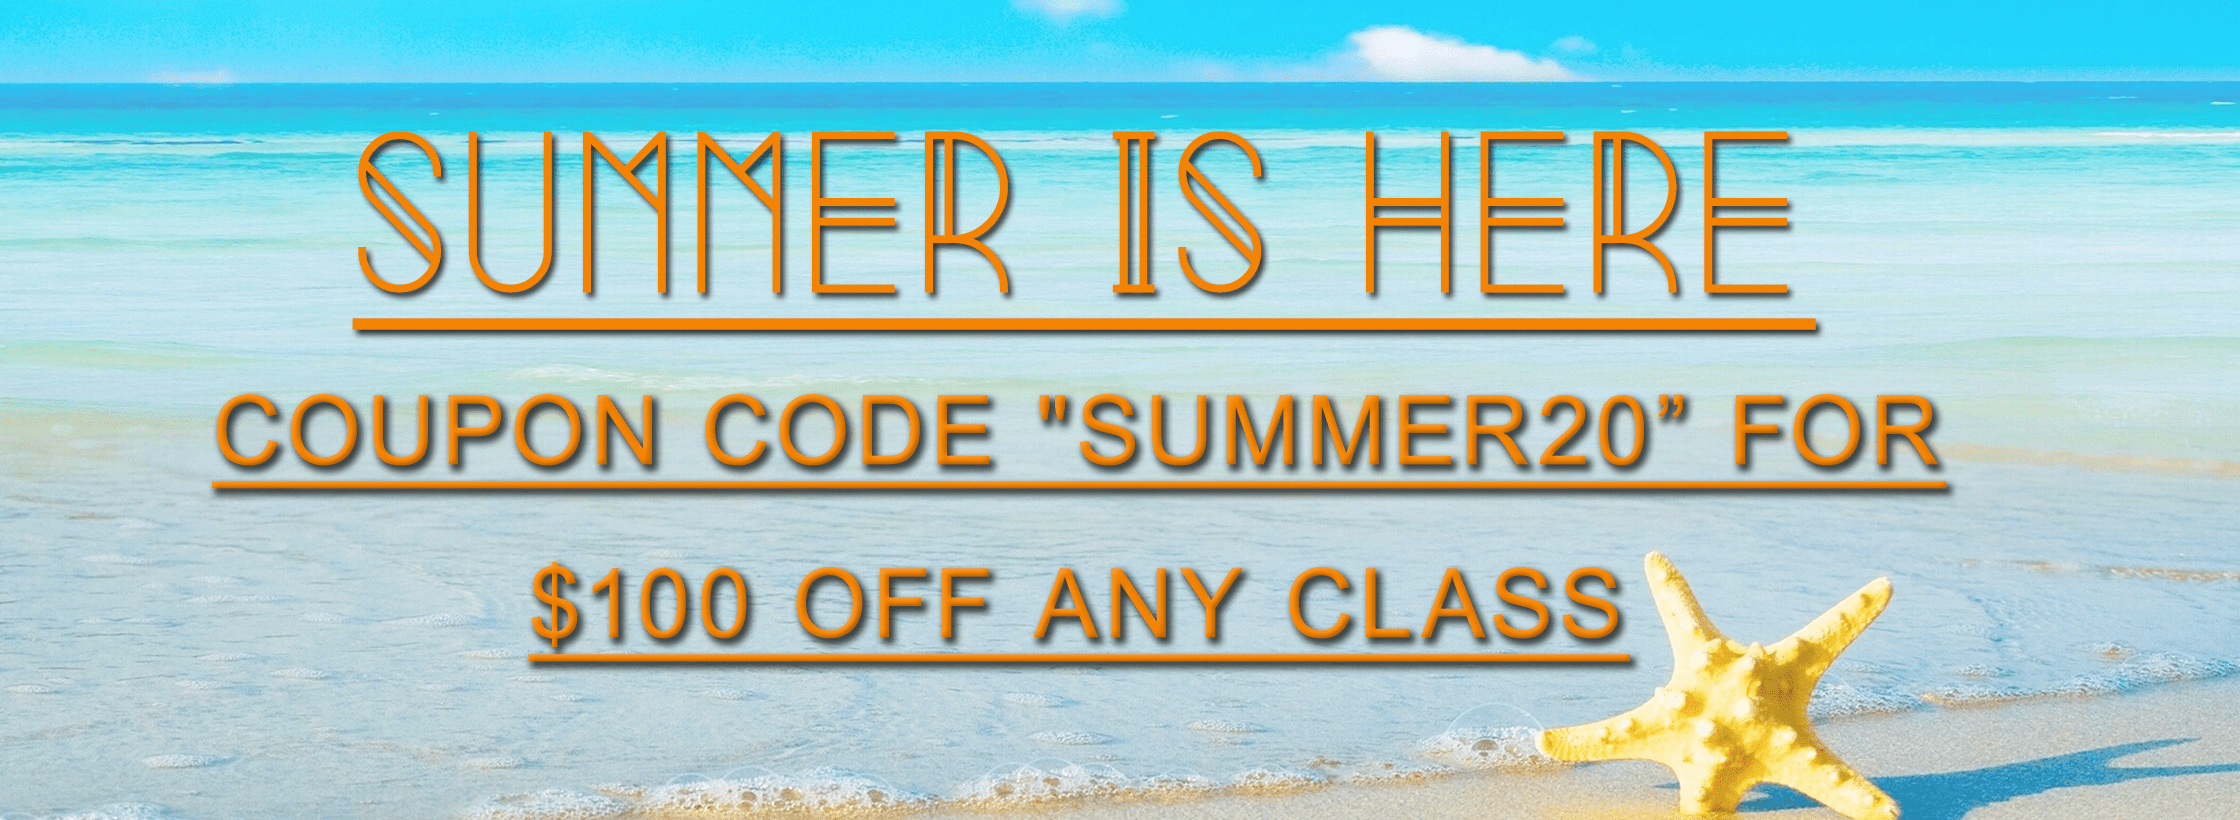 "Use Coupon Code ""Summer20"" for $100 off any class"